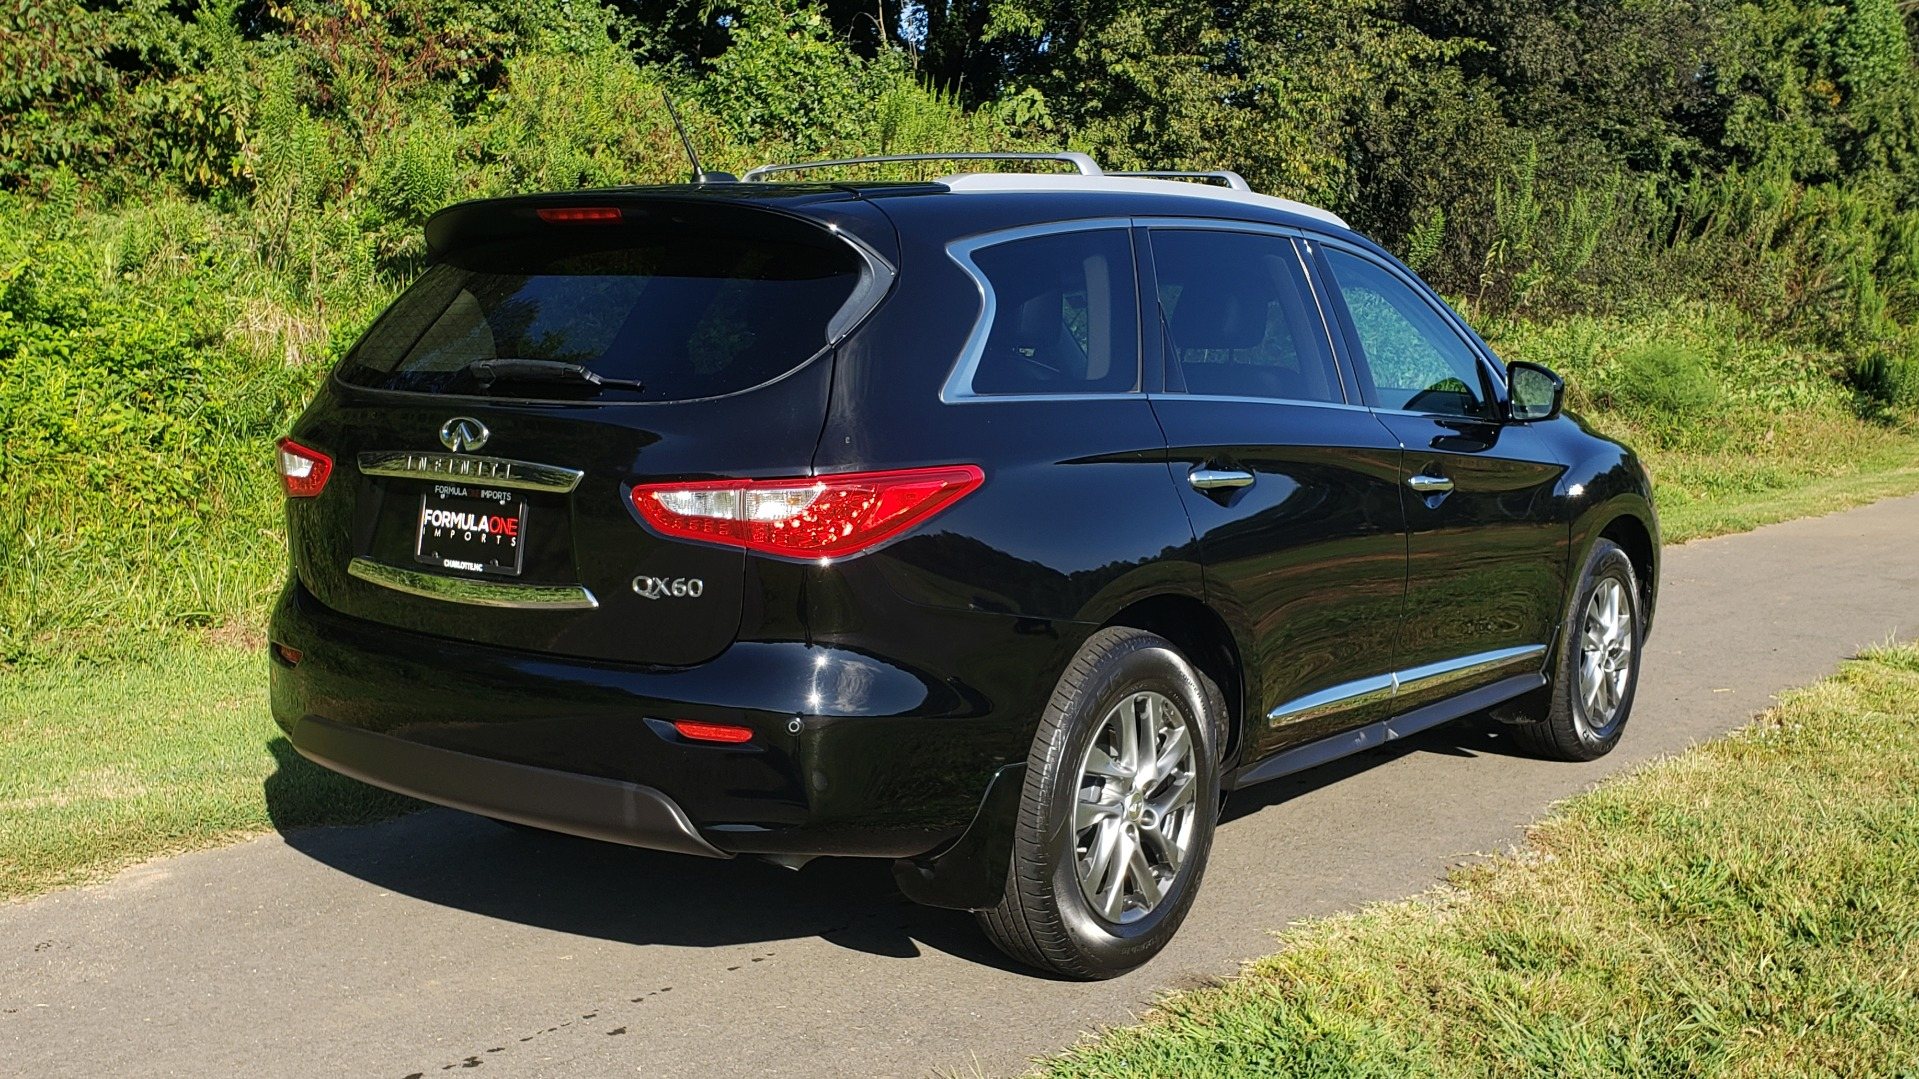 Used 2015 INFINITI QX60 AWD / PREM PLUS PKG / NAV / SUNROOF / BOSE / 3-ROW / REARVIEW for sale $19,695 at Formula Imports in Charlotte NC 28227 8